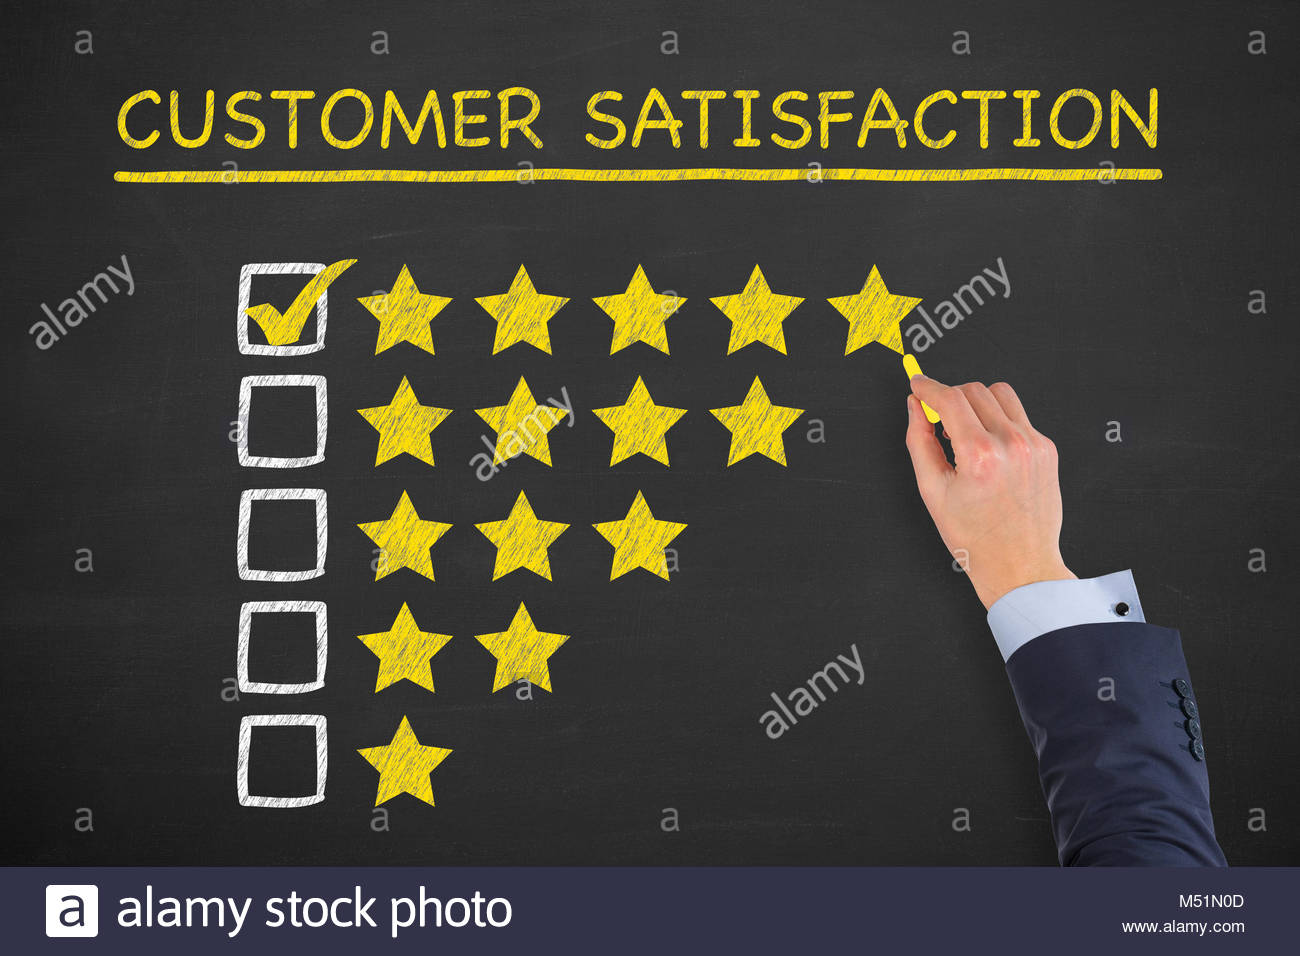 Customer Satisfaction Concepts on Chalkboard Background - Stock Image